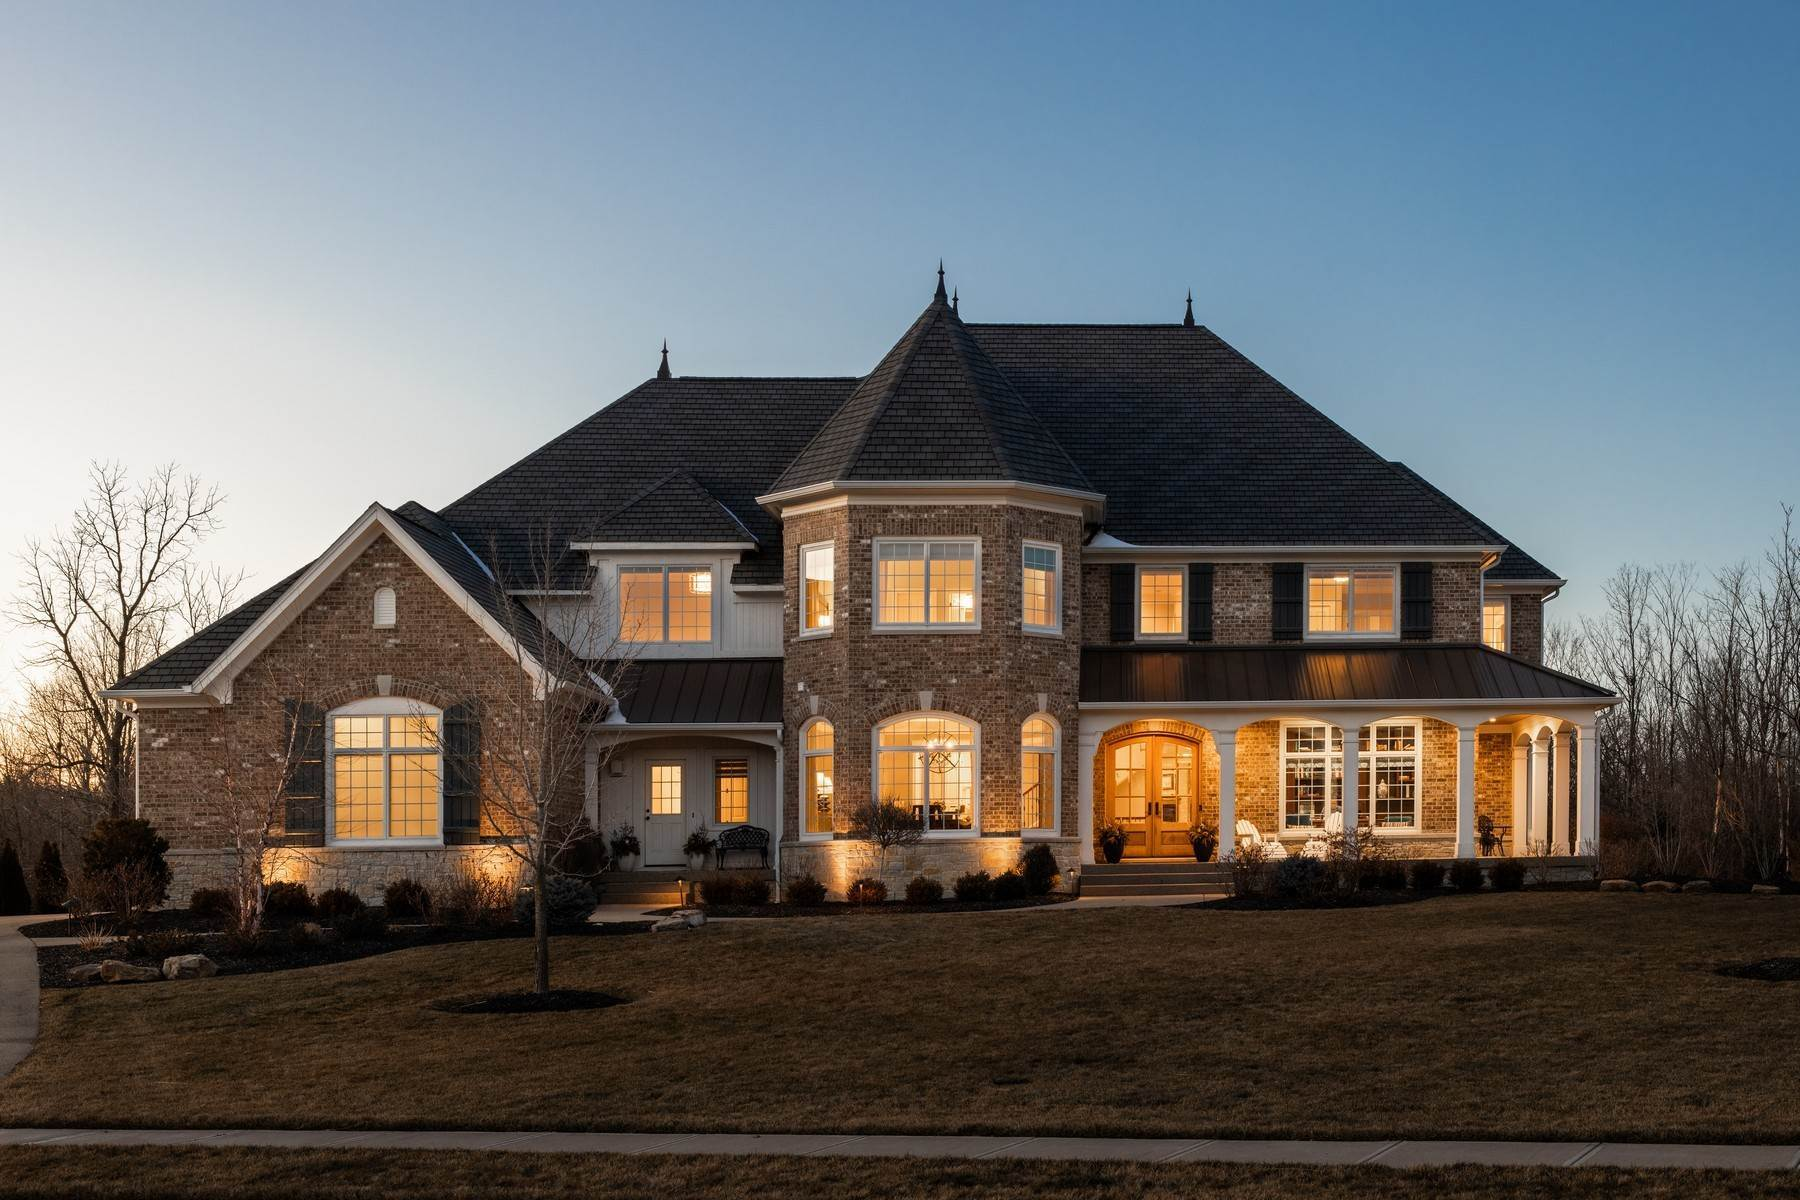 Property for Sale at Stunning Estate in Shannon Springs 8380 Shannon Springs Drive Zionsville, Indiana 46077 United States